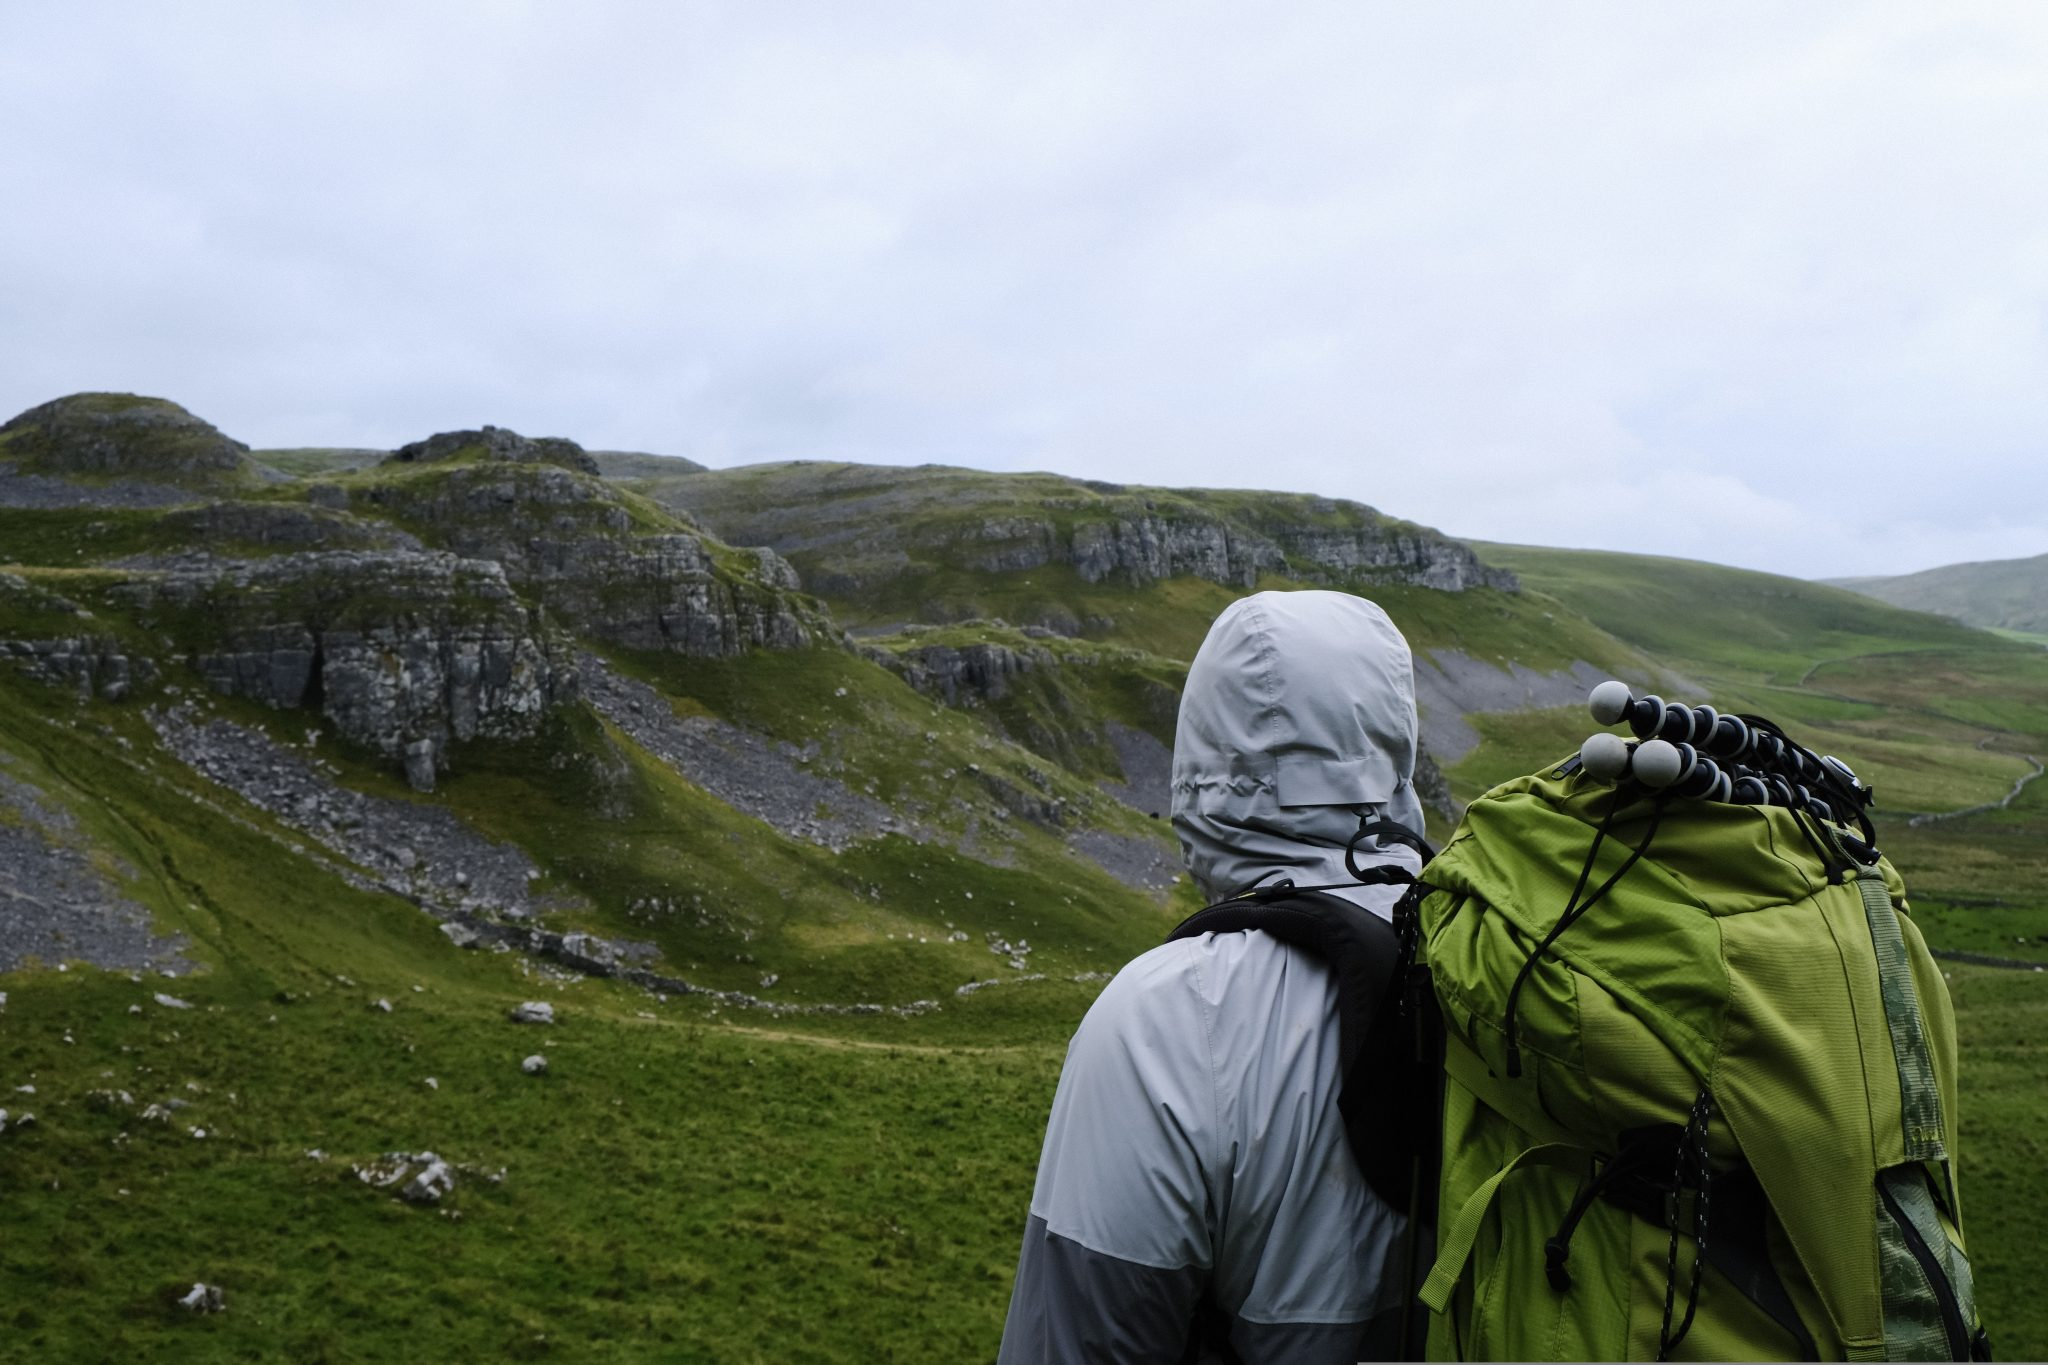 Man on a UK Multi-day hike